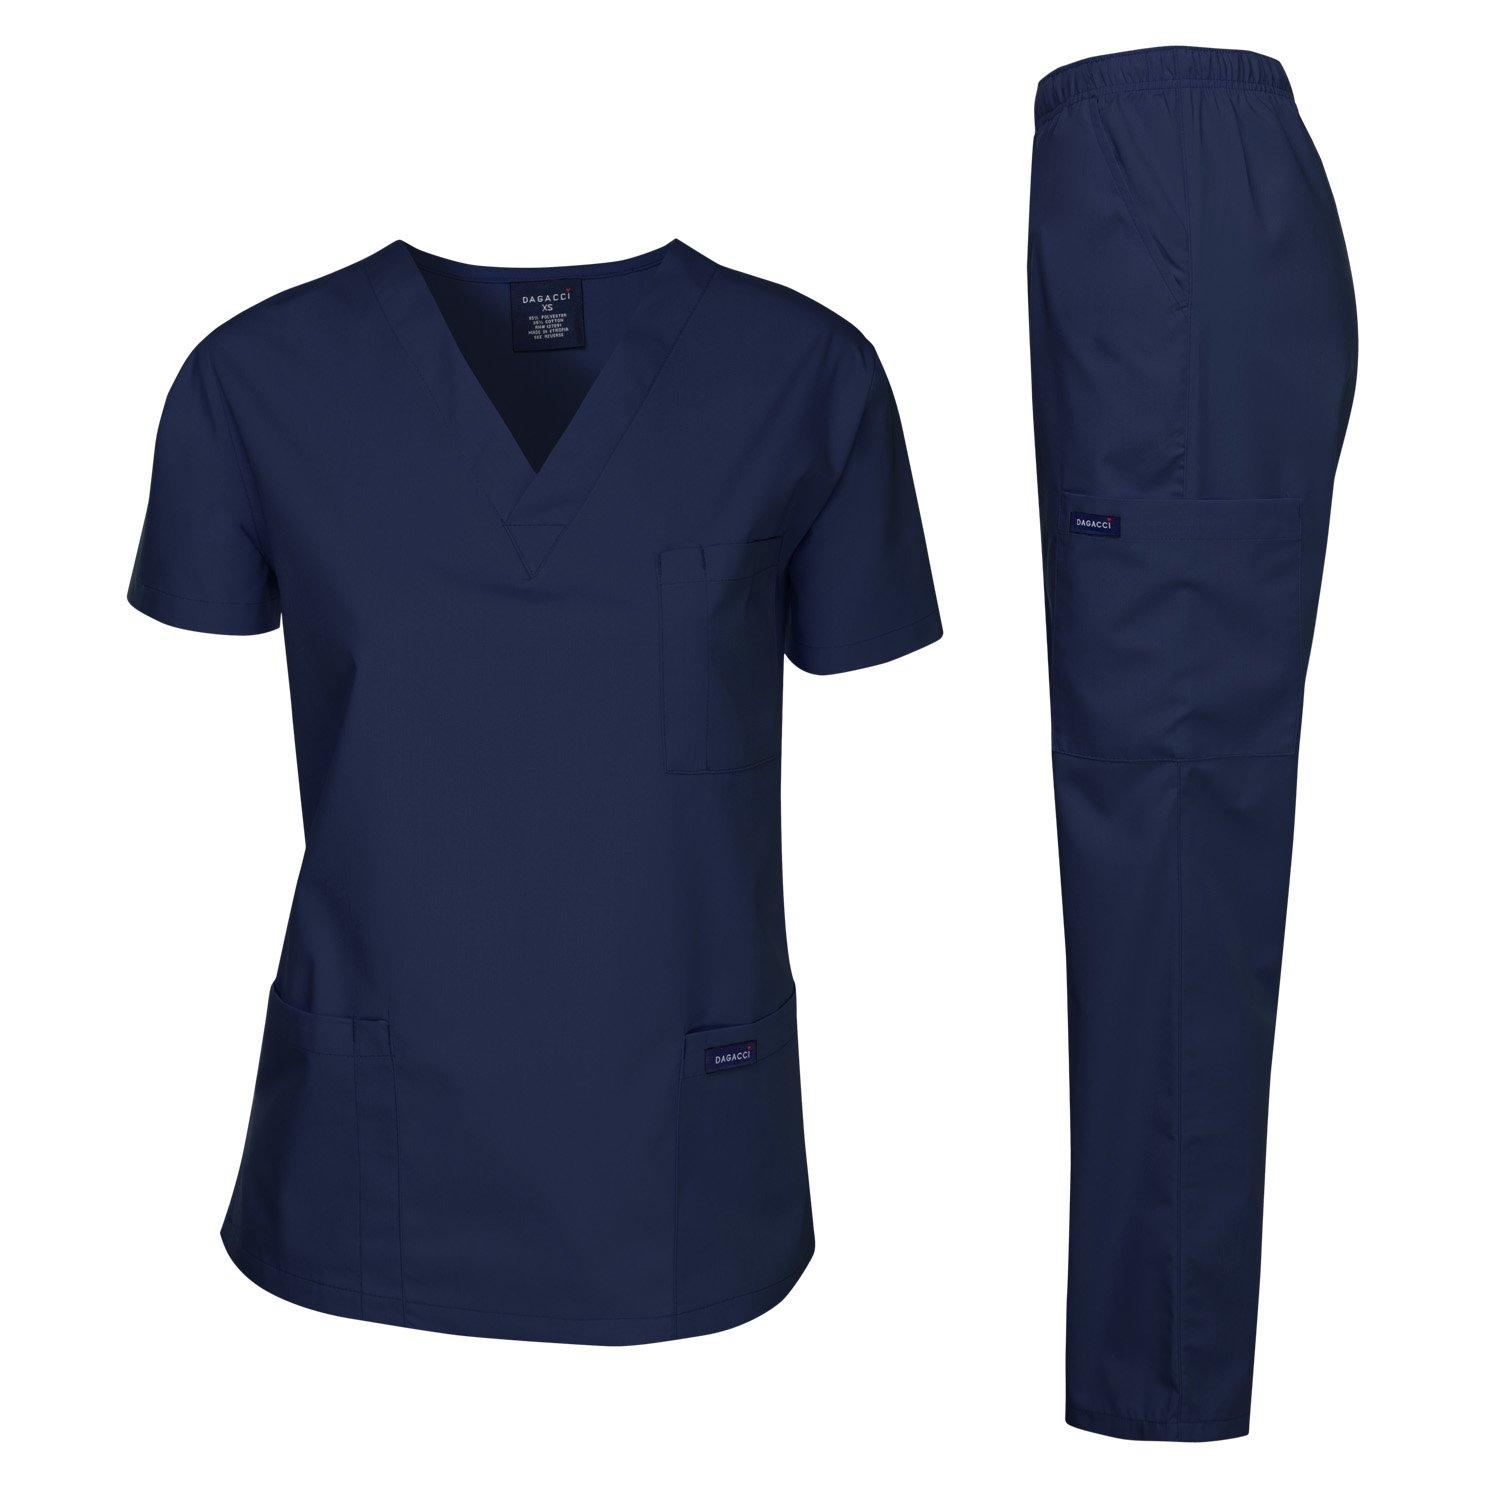 Dagacci Scrubs Medical Uniform Men Scrubs Set Medical Scrubs Top and Pants (Small, Navy)